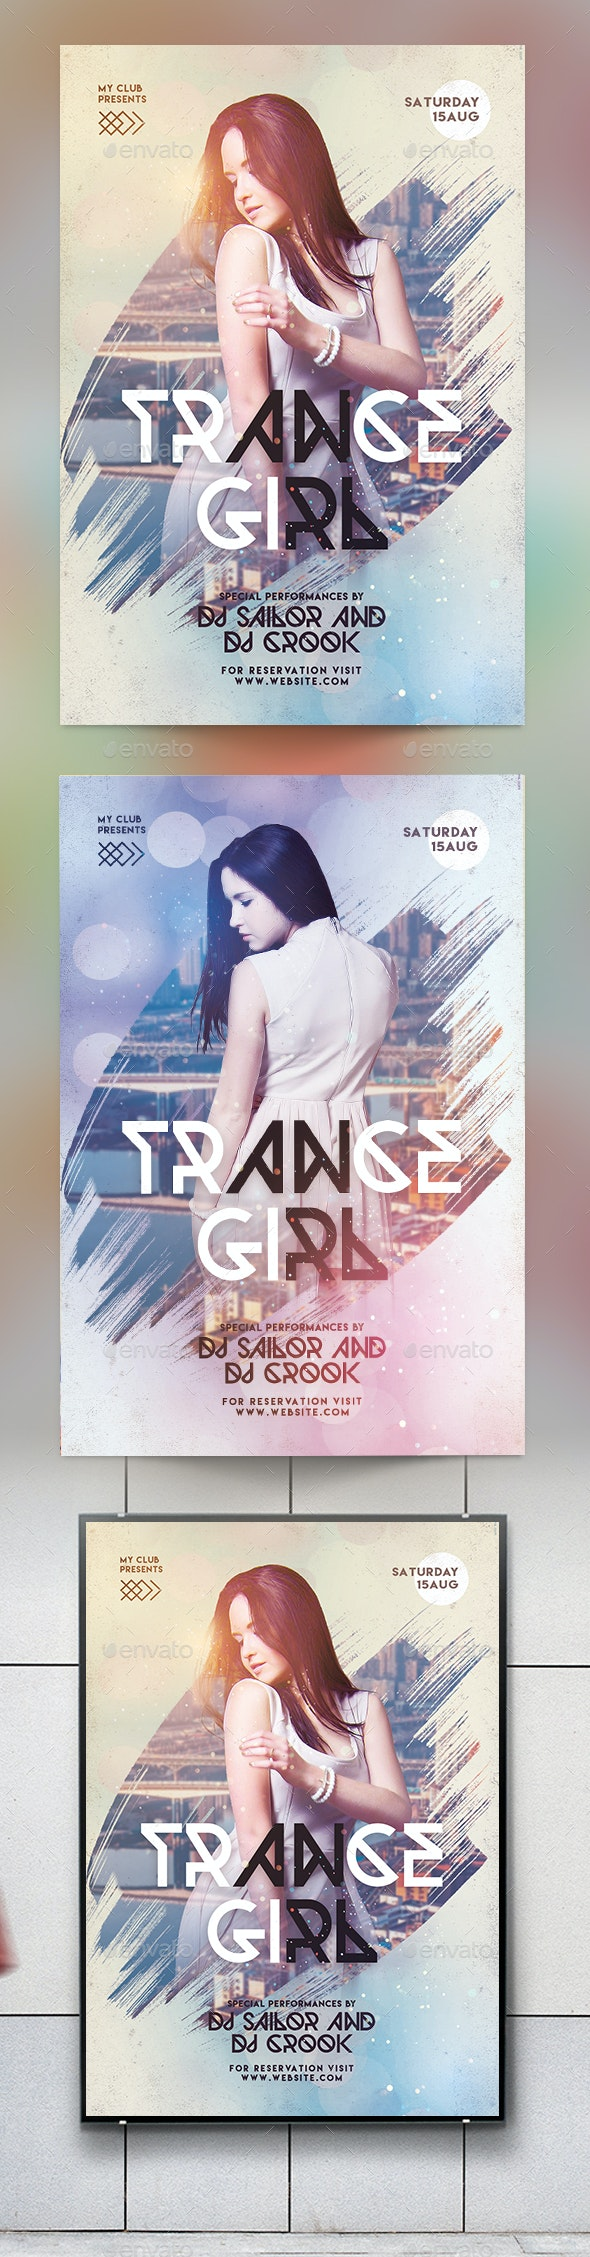 Trance Girl Party Flyer - Clubs & Parties Events